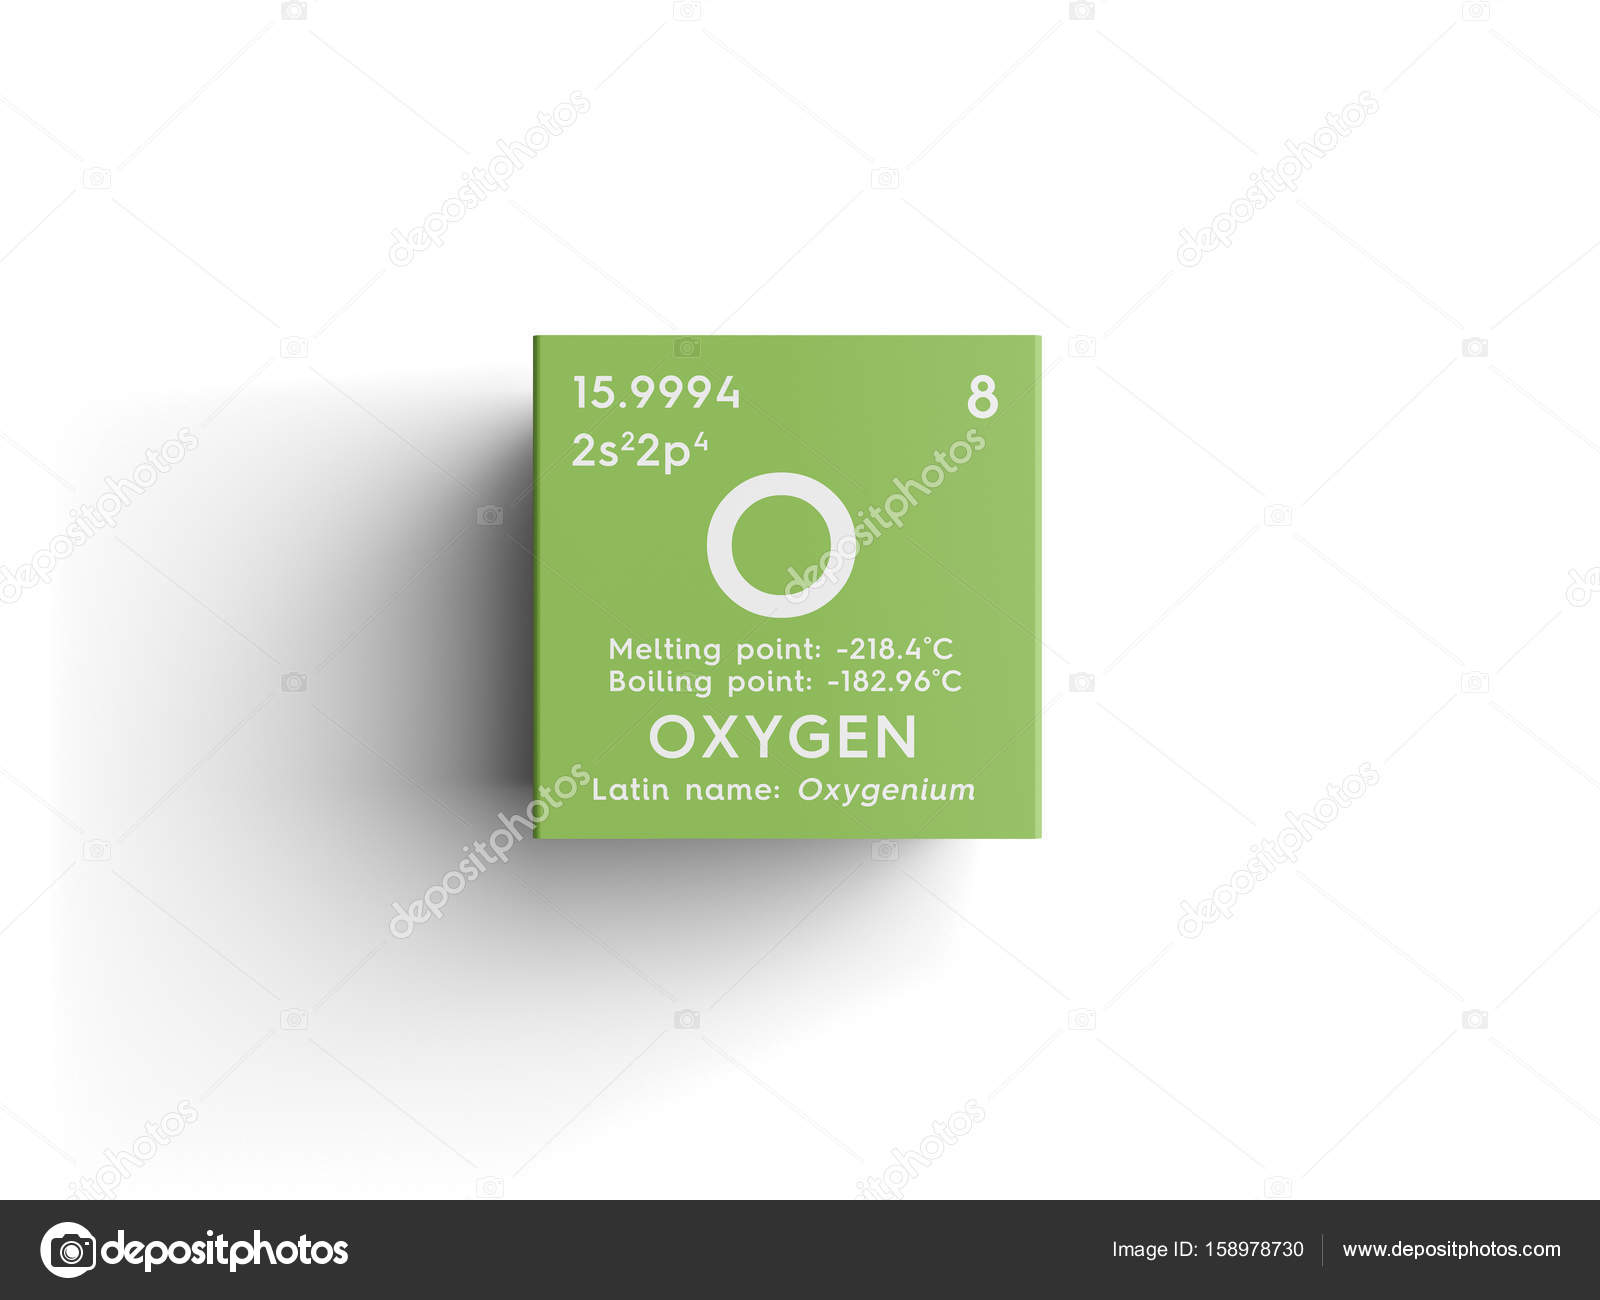 Oxygen on periodic table gallery periodic table images oxygen other nonmetals chemical element of mendeleevs periodic oxygen other nonmetals chemical element of mendeleevs periodic gamestrikefo Images